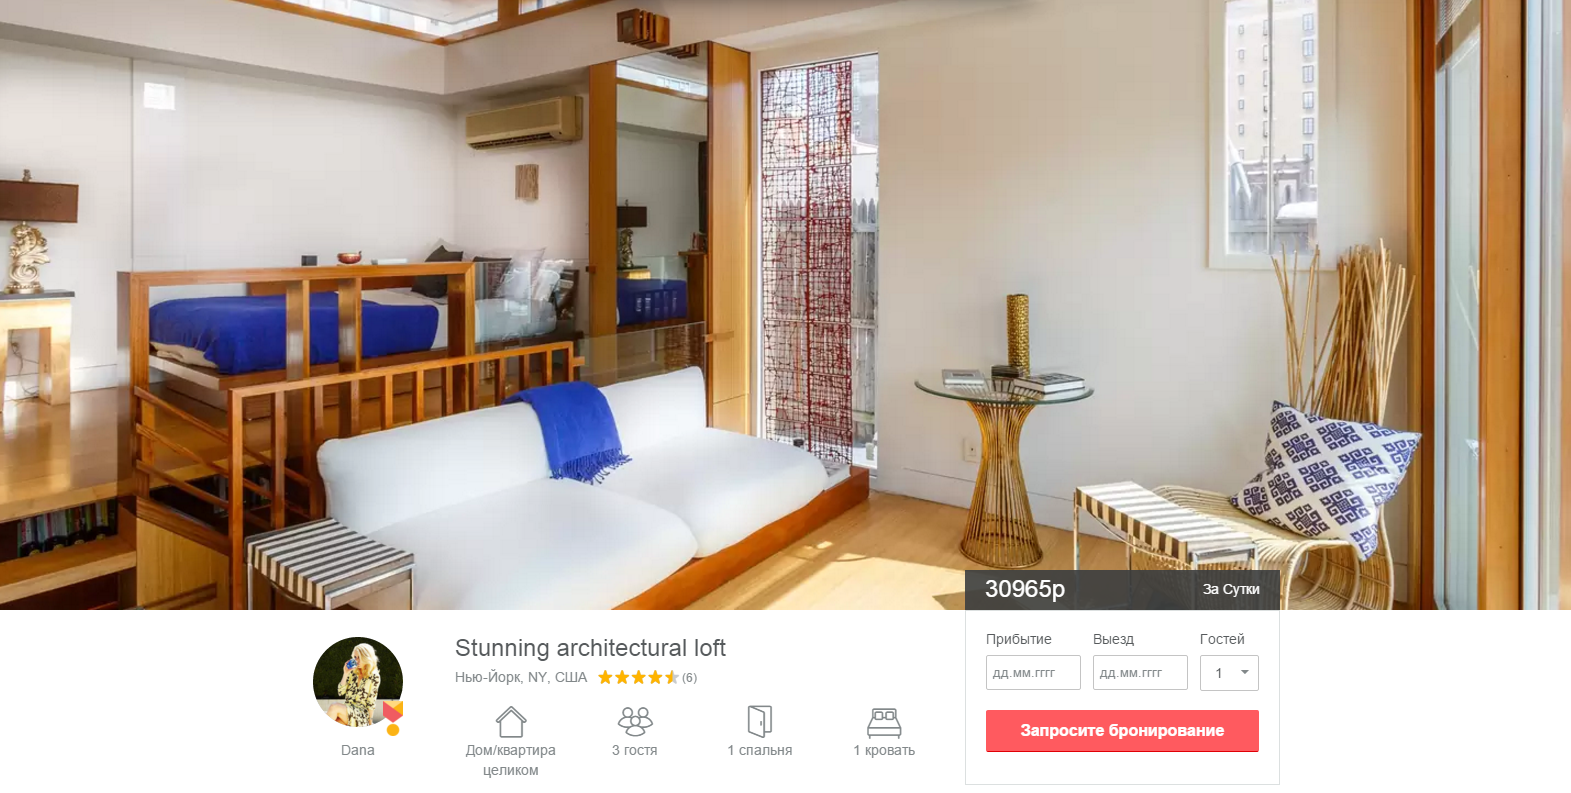 13. Airbnb